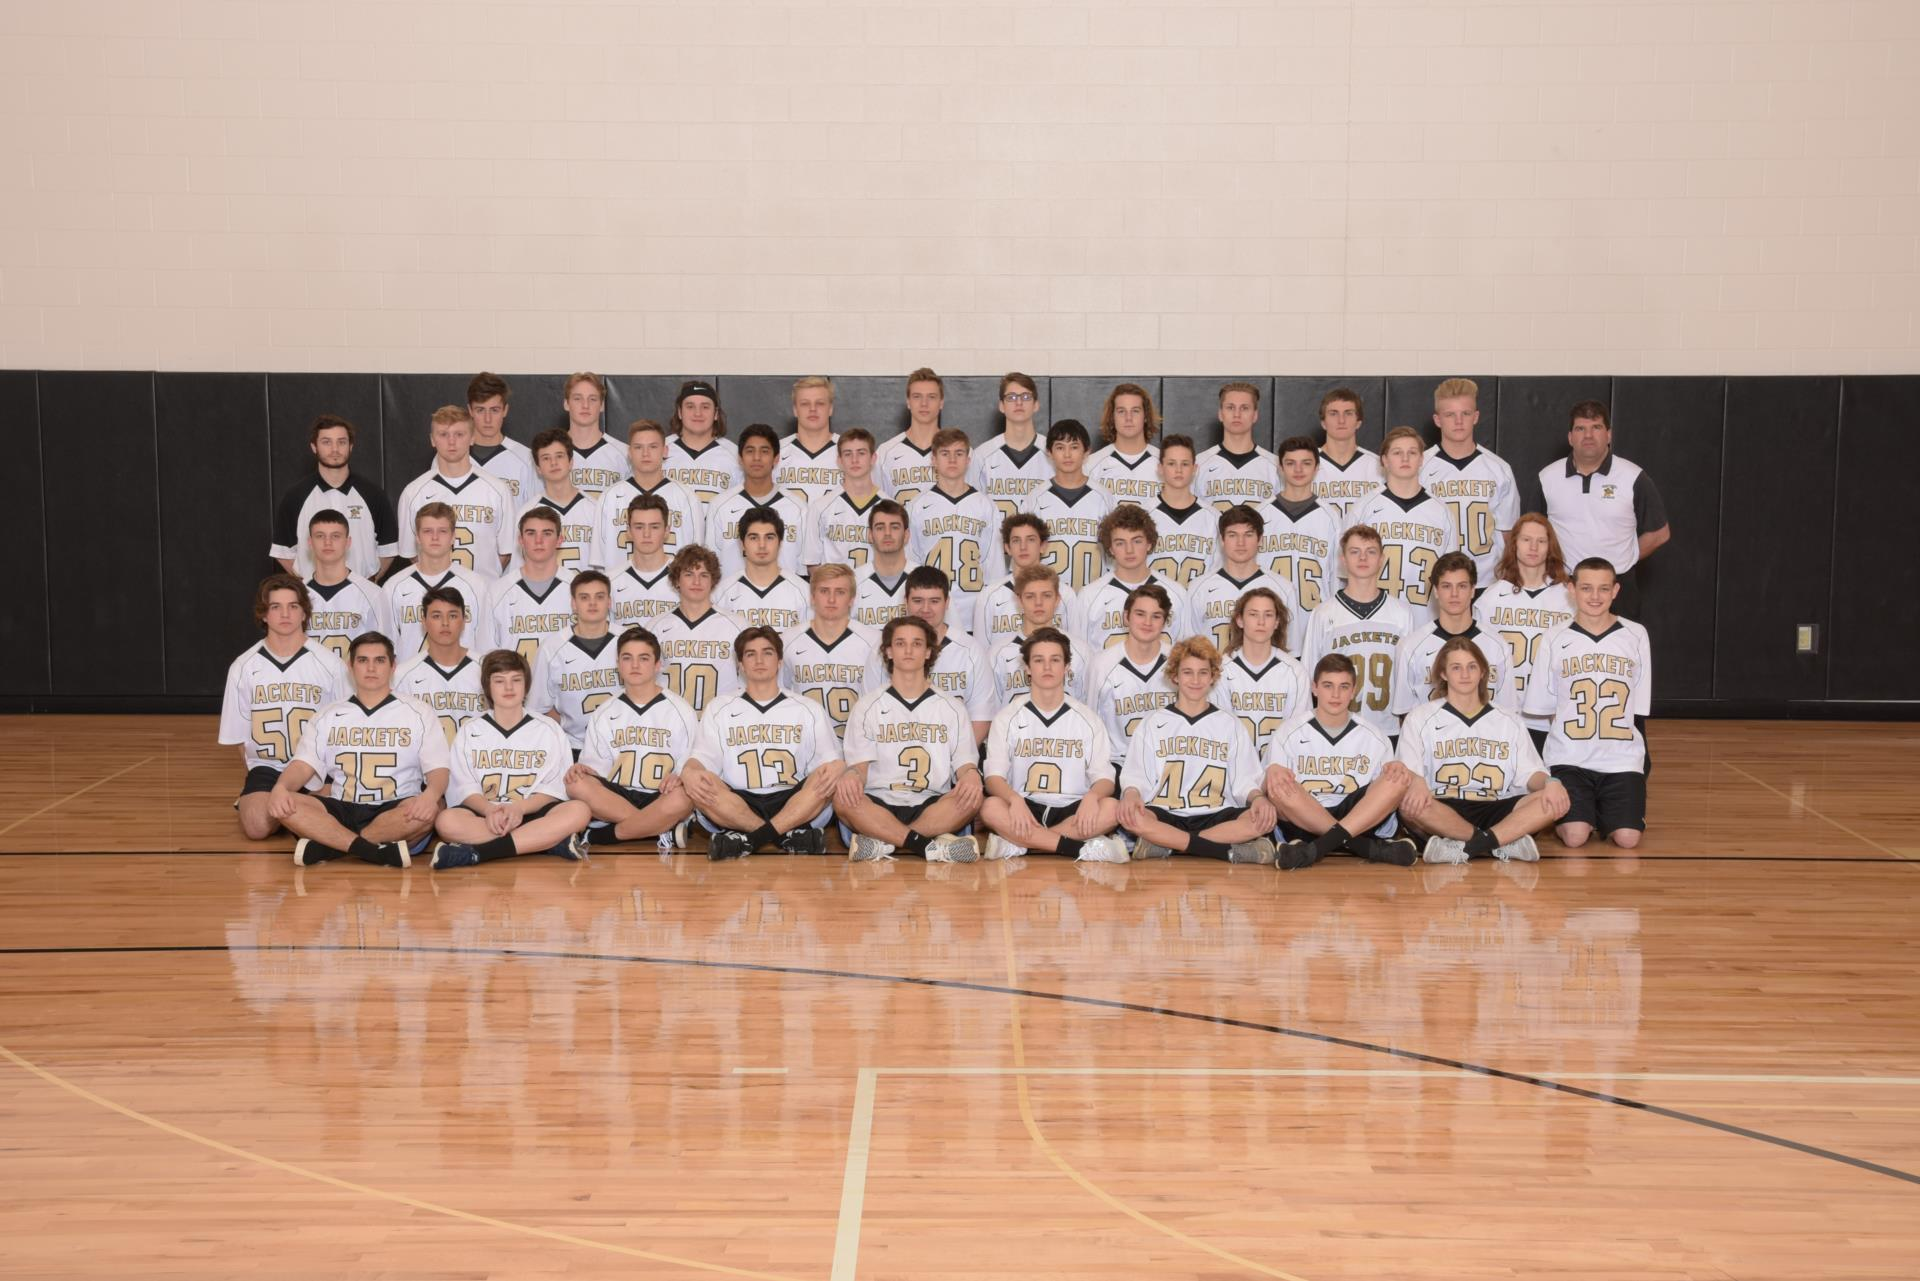 PHS Boys Lacrosse Team